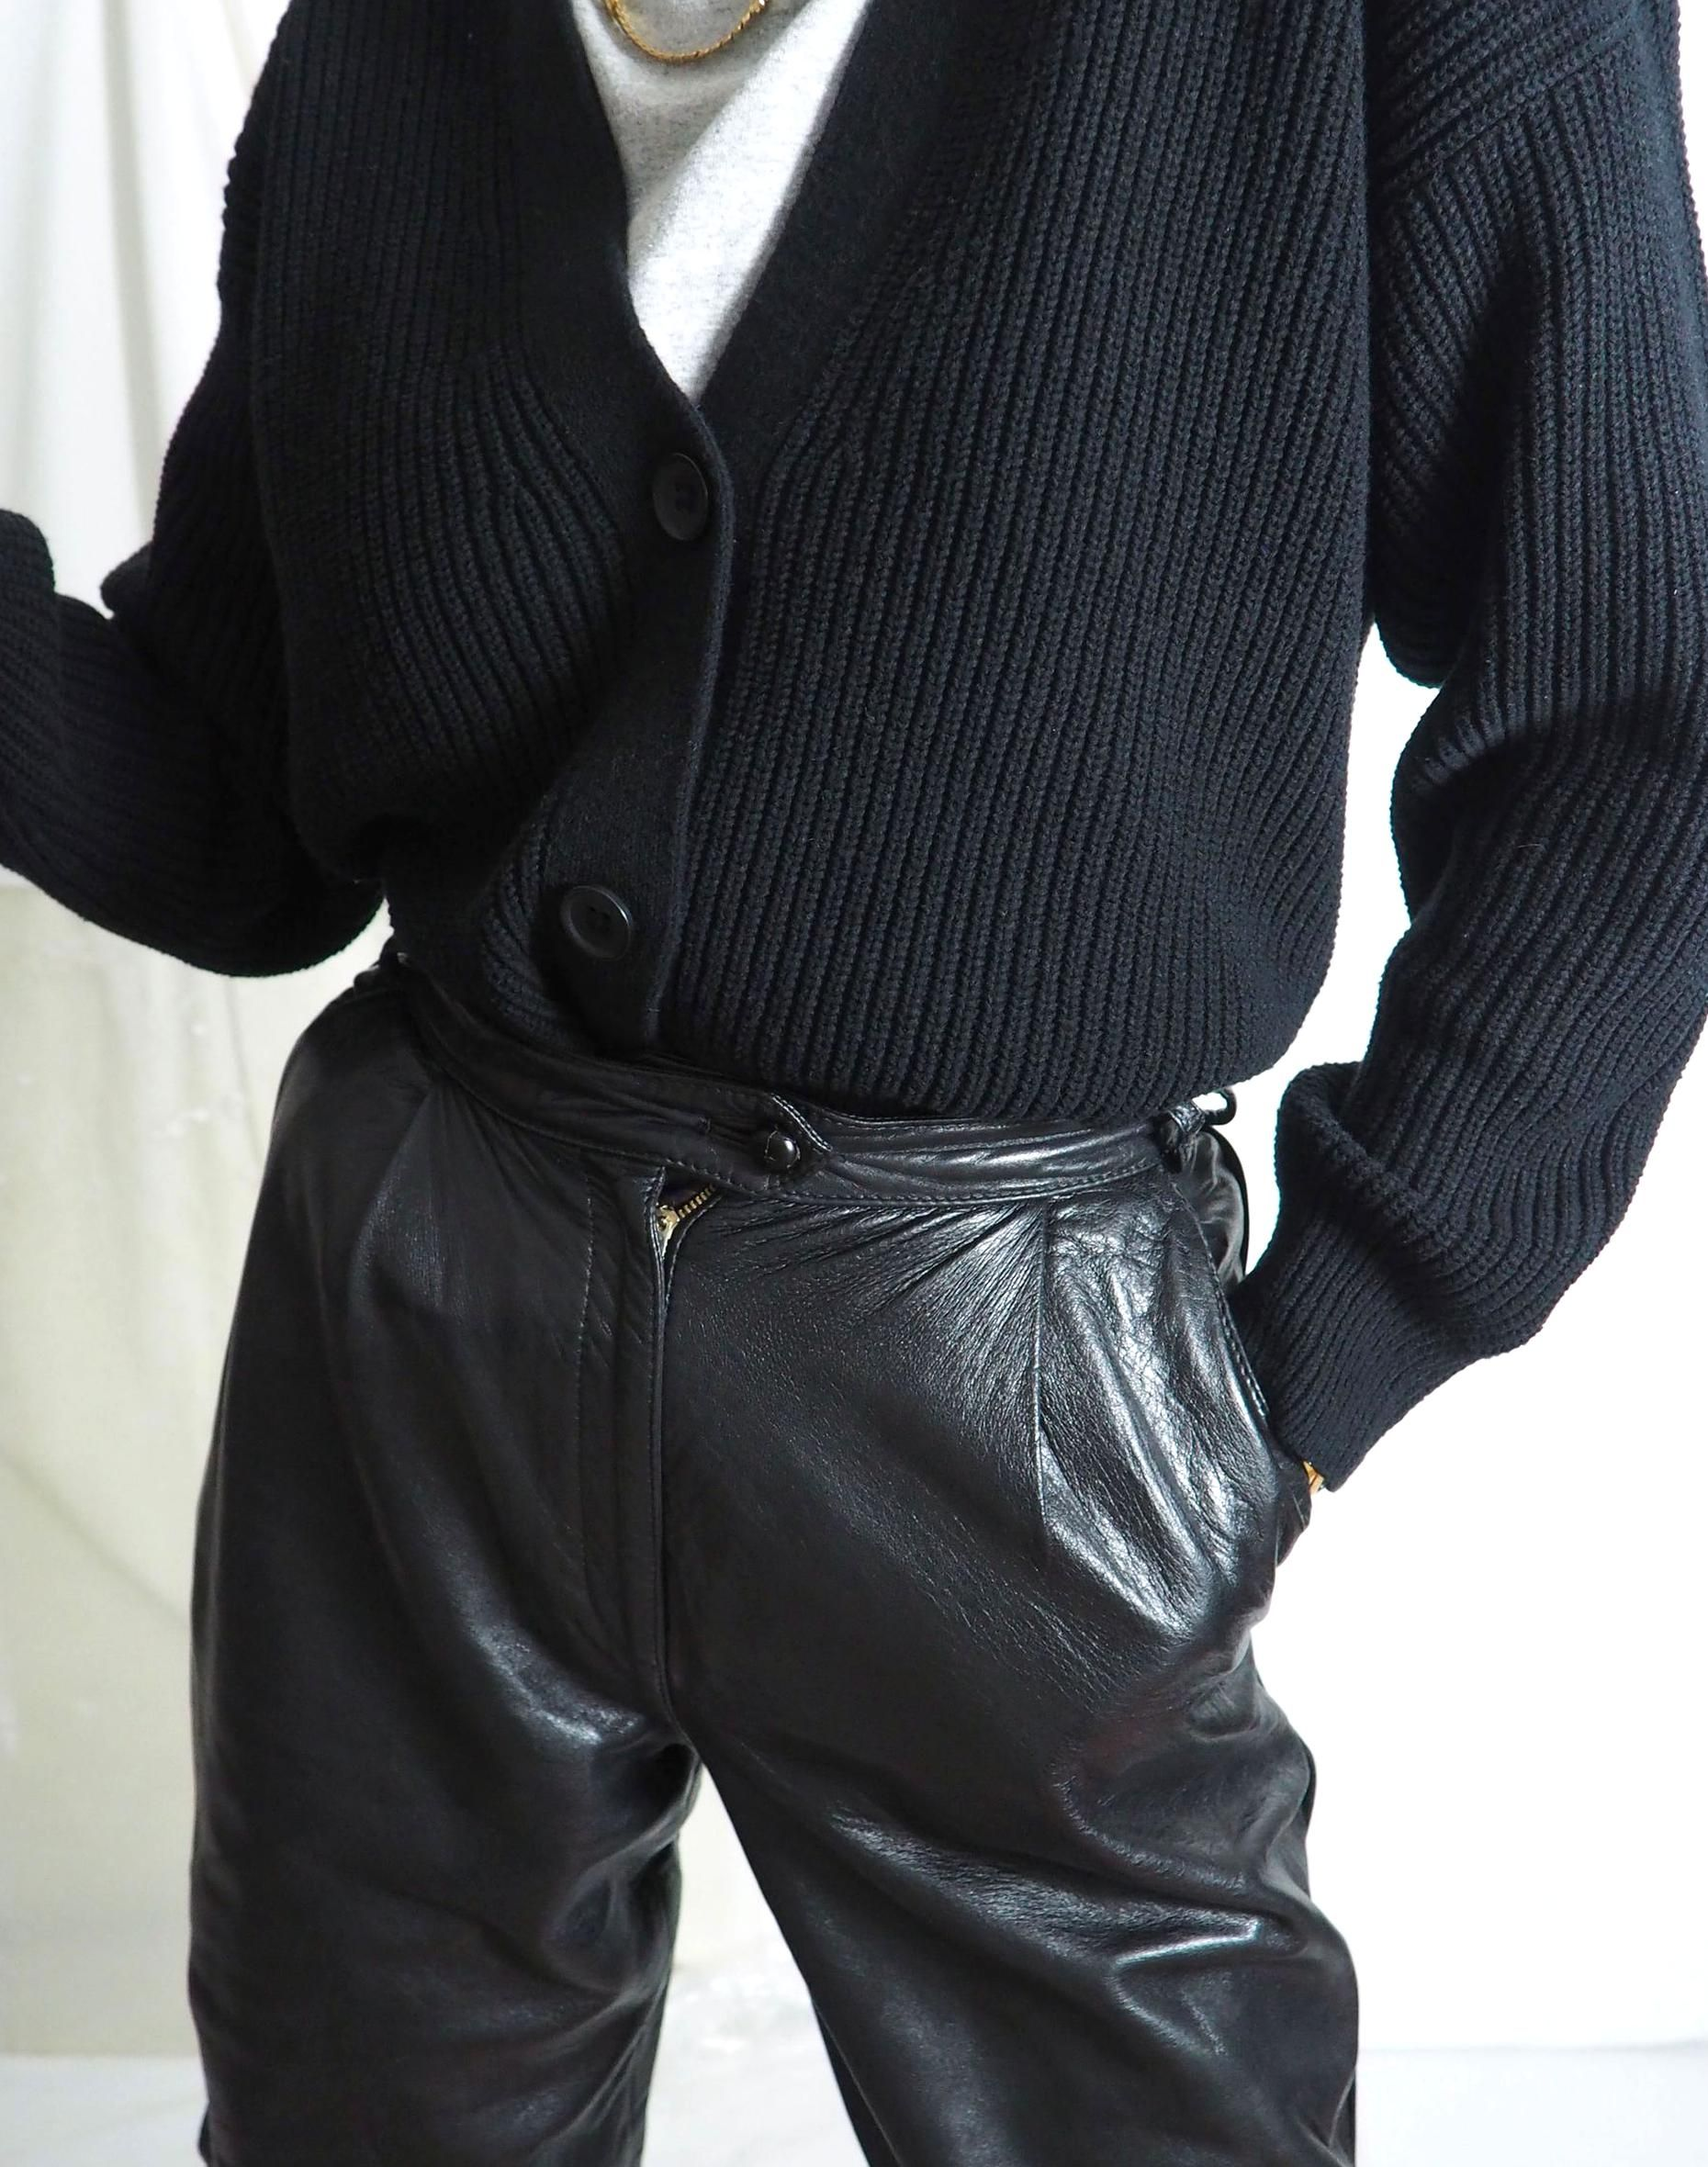 You Like Our Vintage Outfits Find Them On Our E Store Untitled1991 International Shipping In 2020 Vintage Clothing Online Black Leather Pants Vintage Outfits